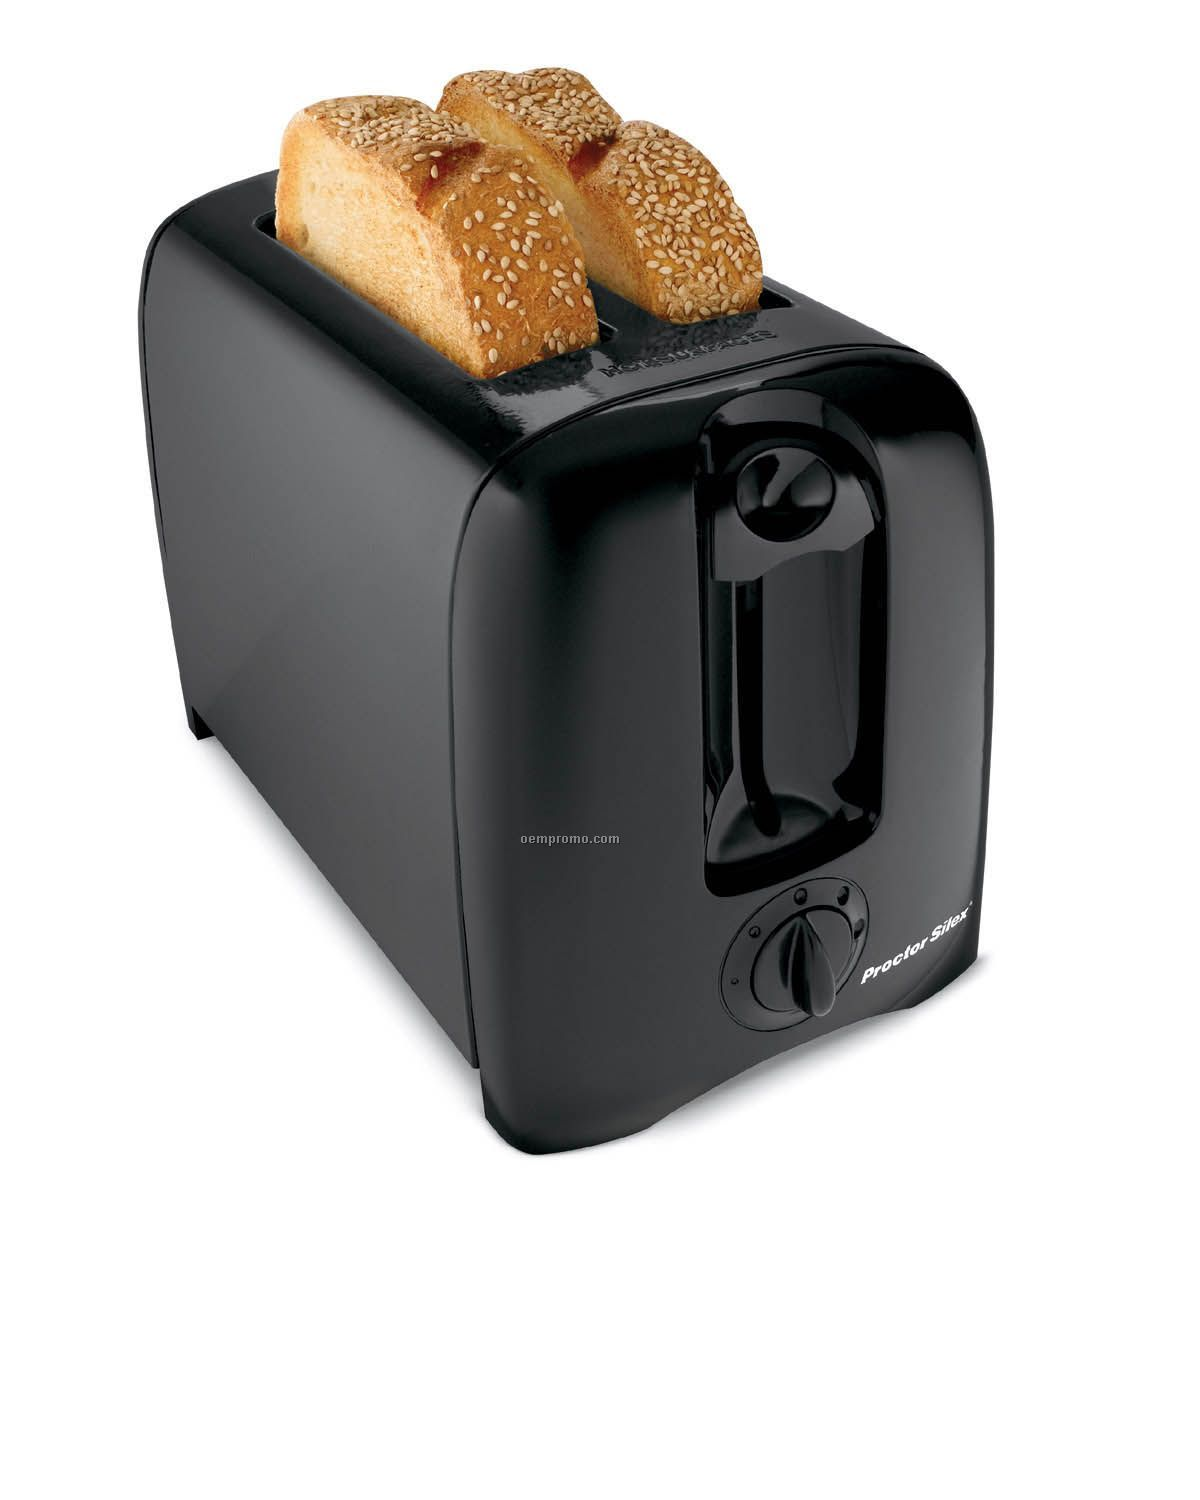 Proctor Silex Cool Wall 2 Slice Toaster